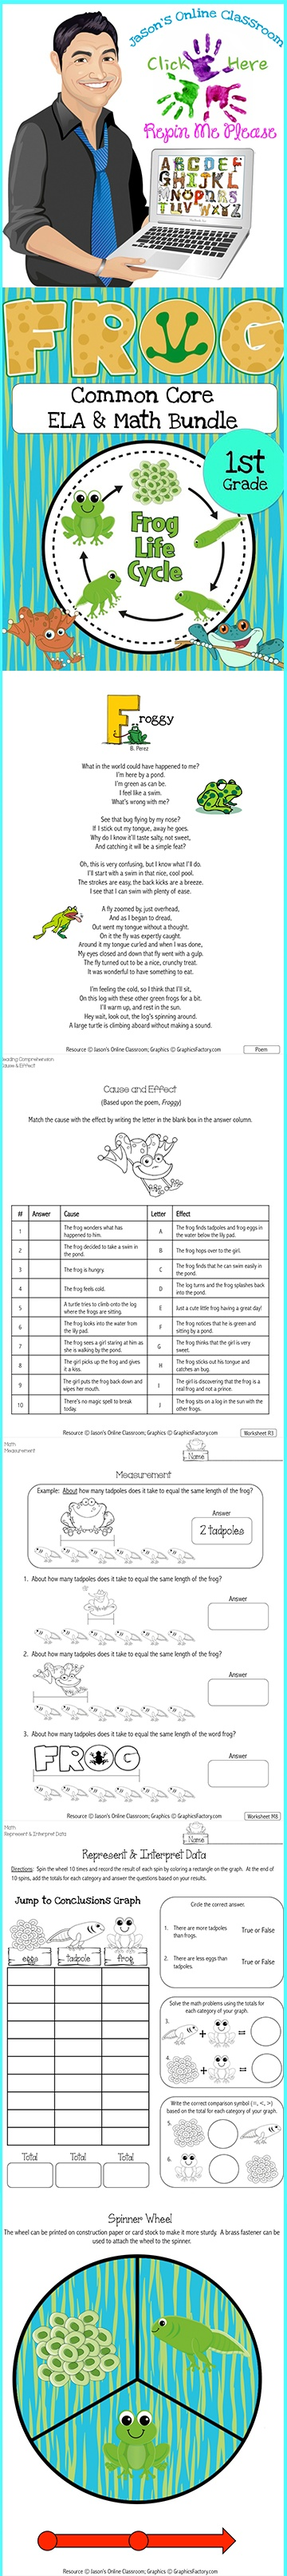 17 Best Images About Frog Life Cycle Unit On Pinterest Pocket Charts Life Cycles And Spring